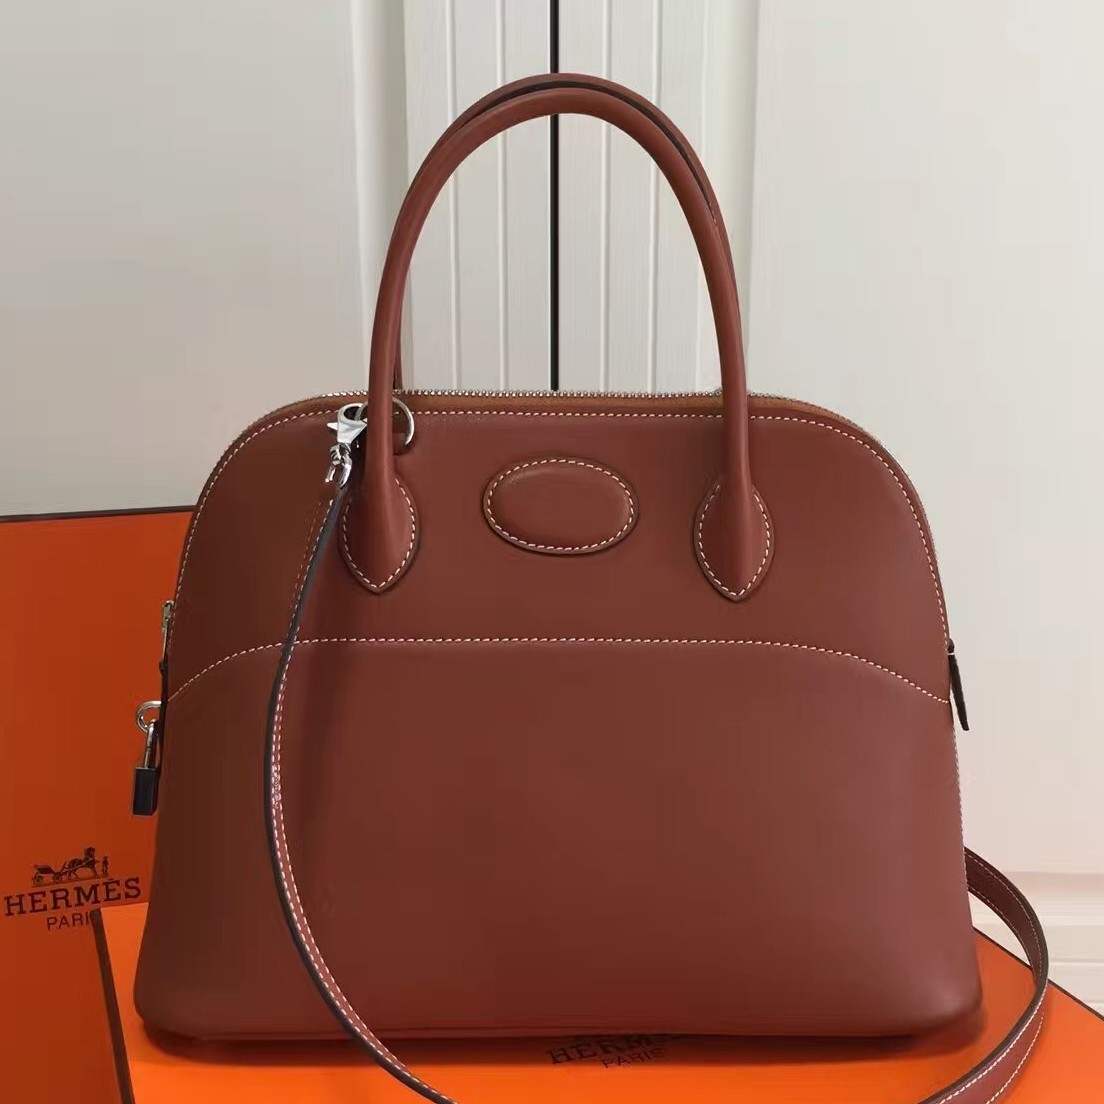 1:1 Replica Hermes Bolide 31cm Bag In Brown Swift Leather